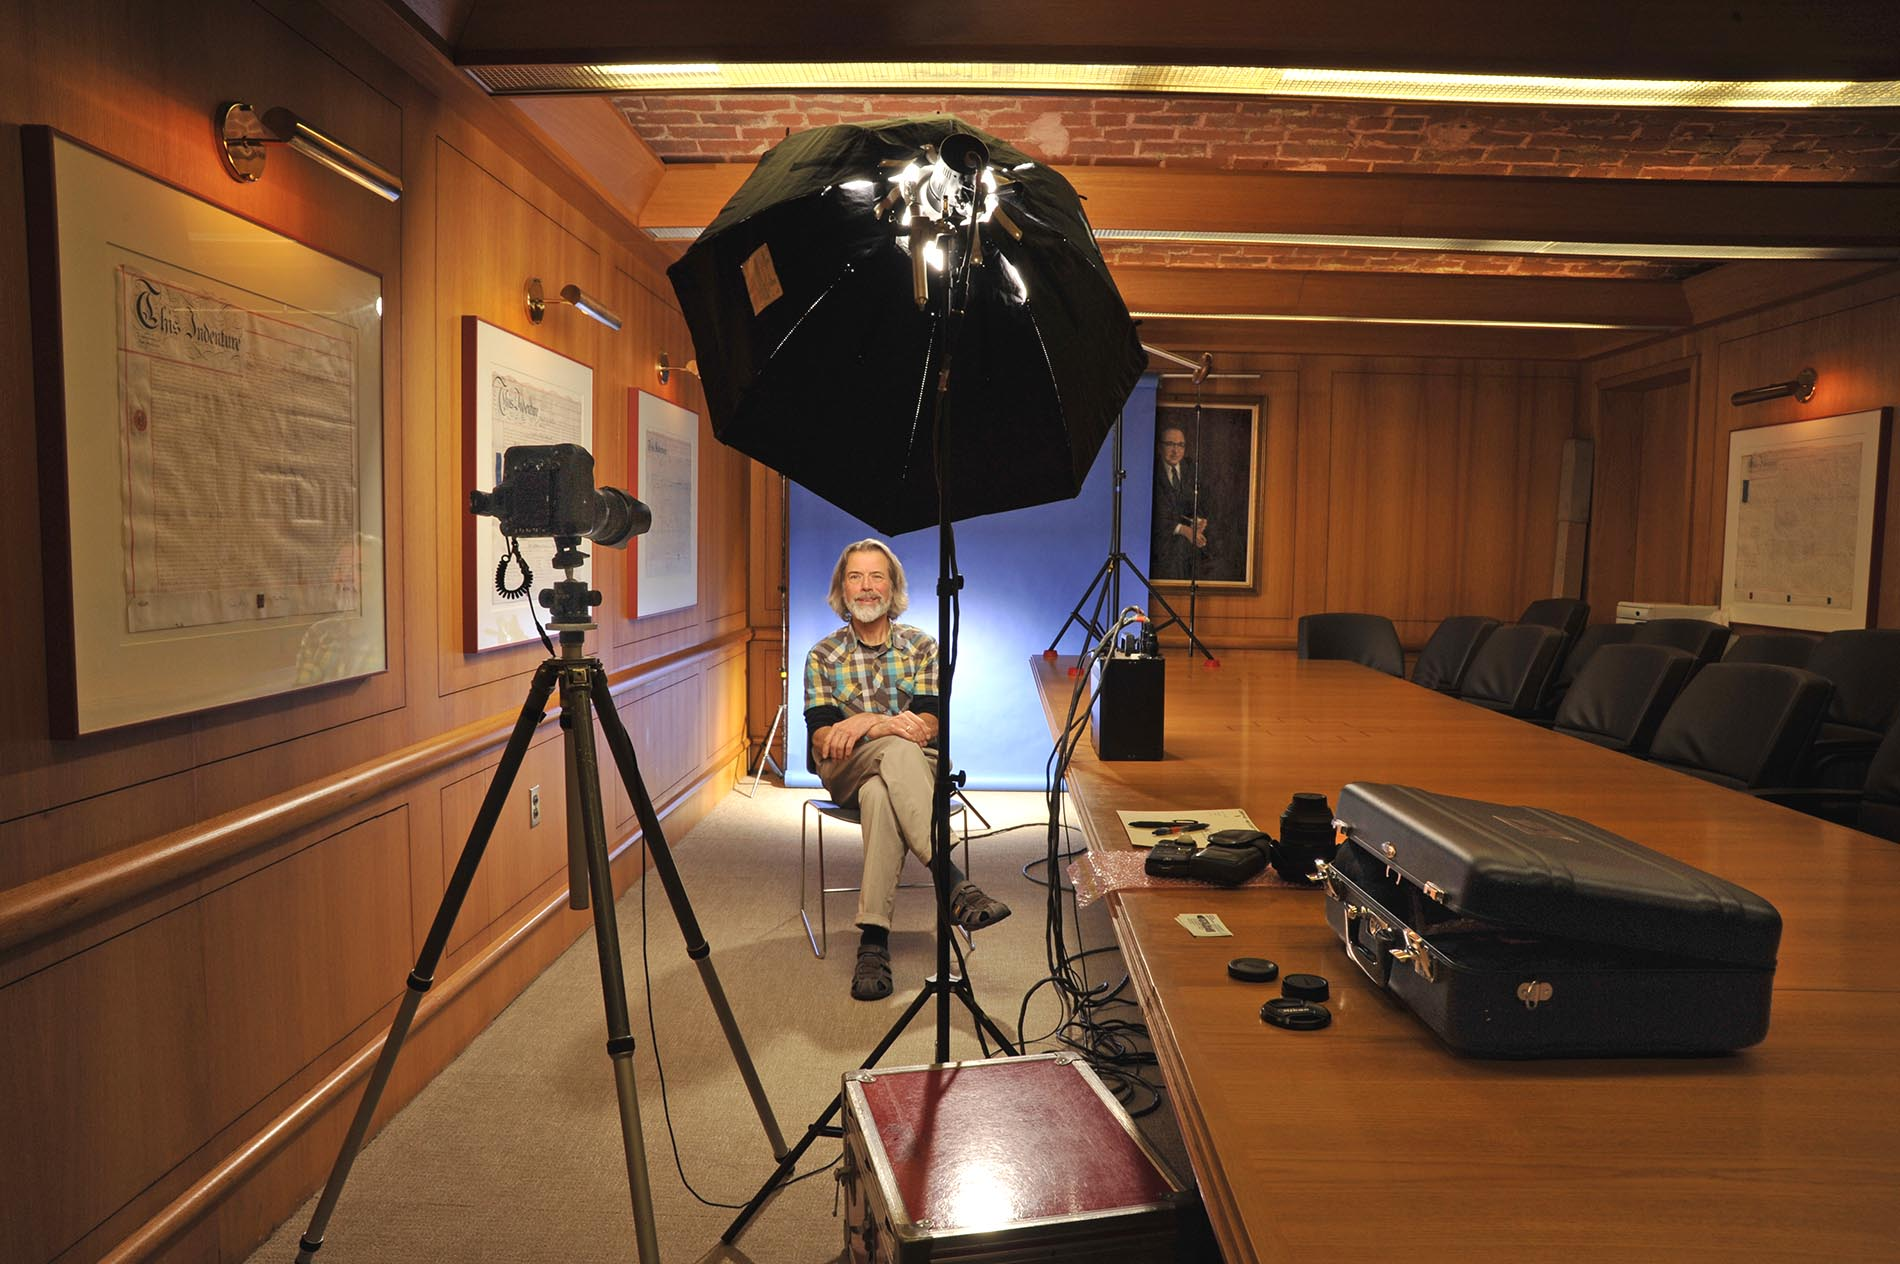 On location behind the scenes at client's boardroom